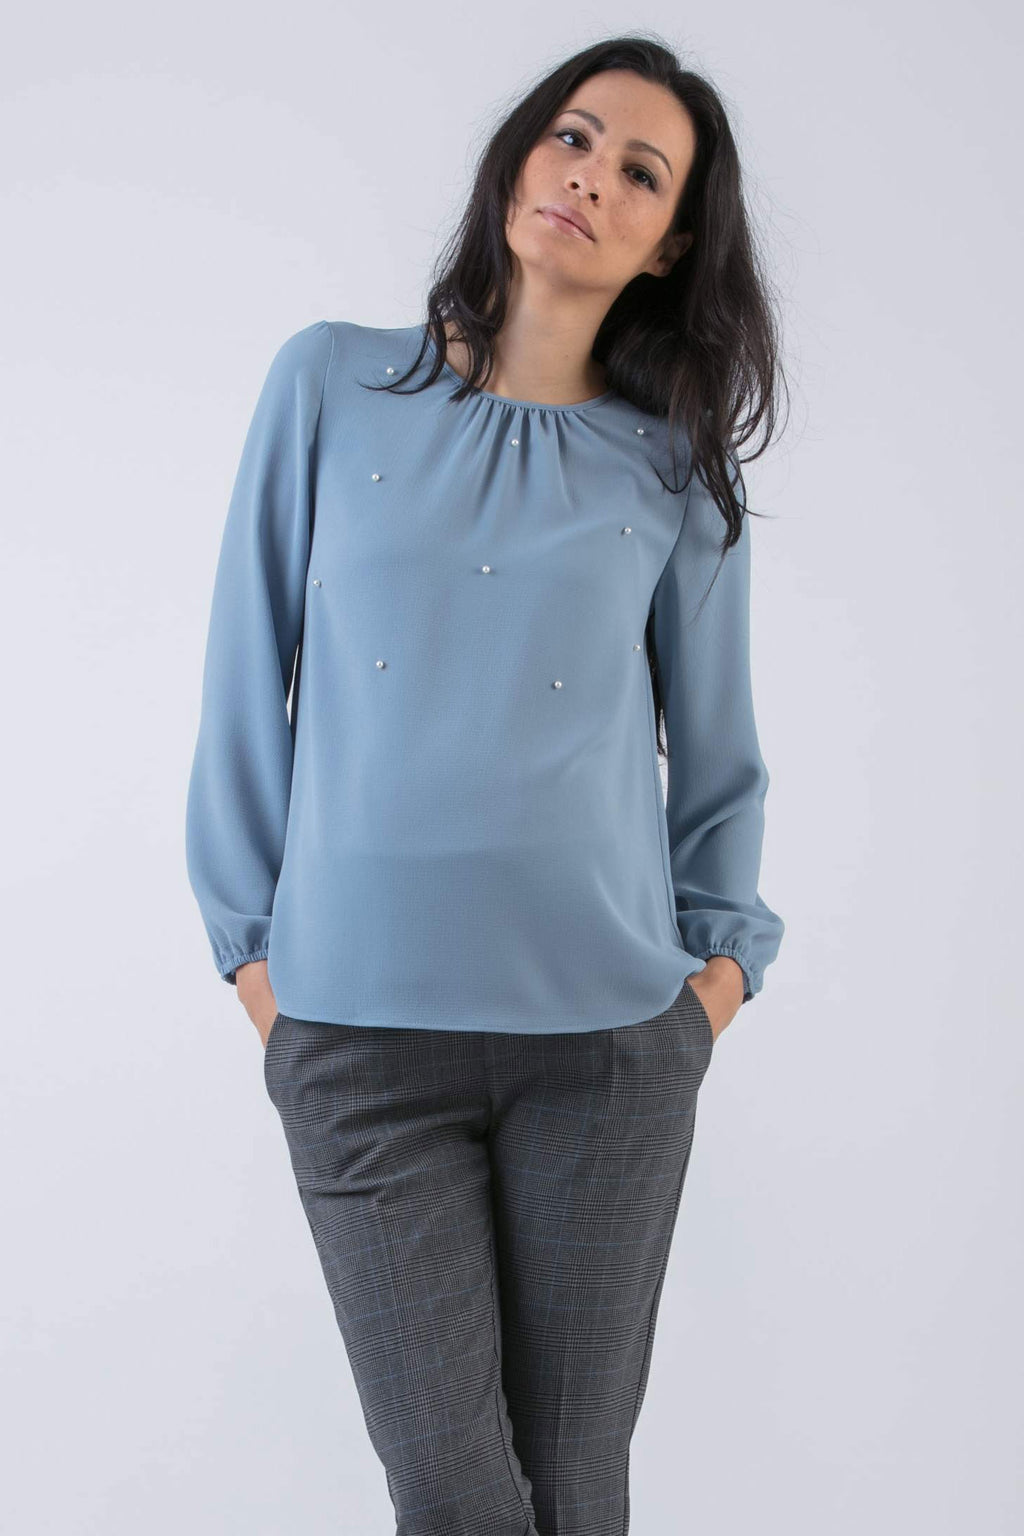 Talia Pearl Embellished Maternity Blouse in Slate Blue - Seven Women Maternity